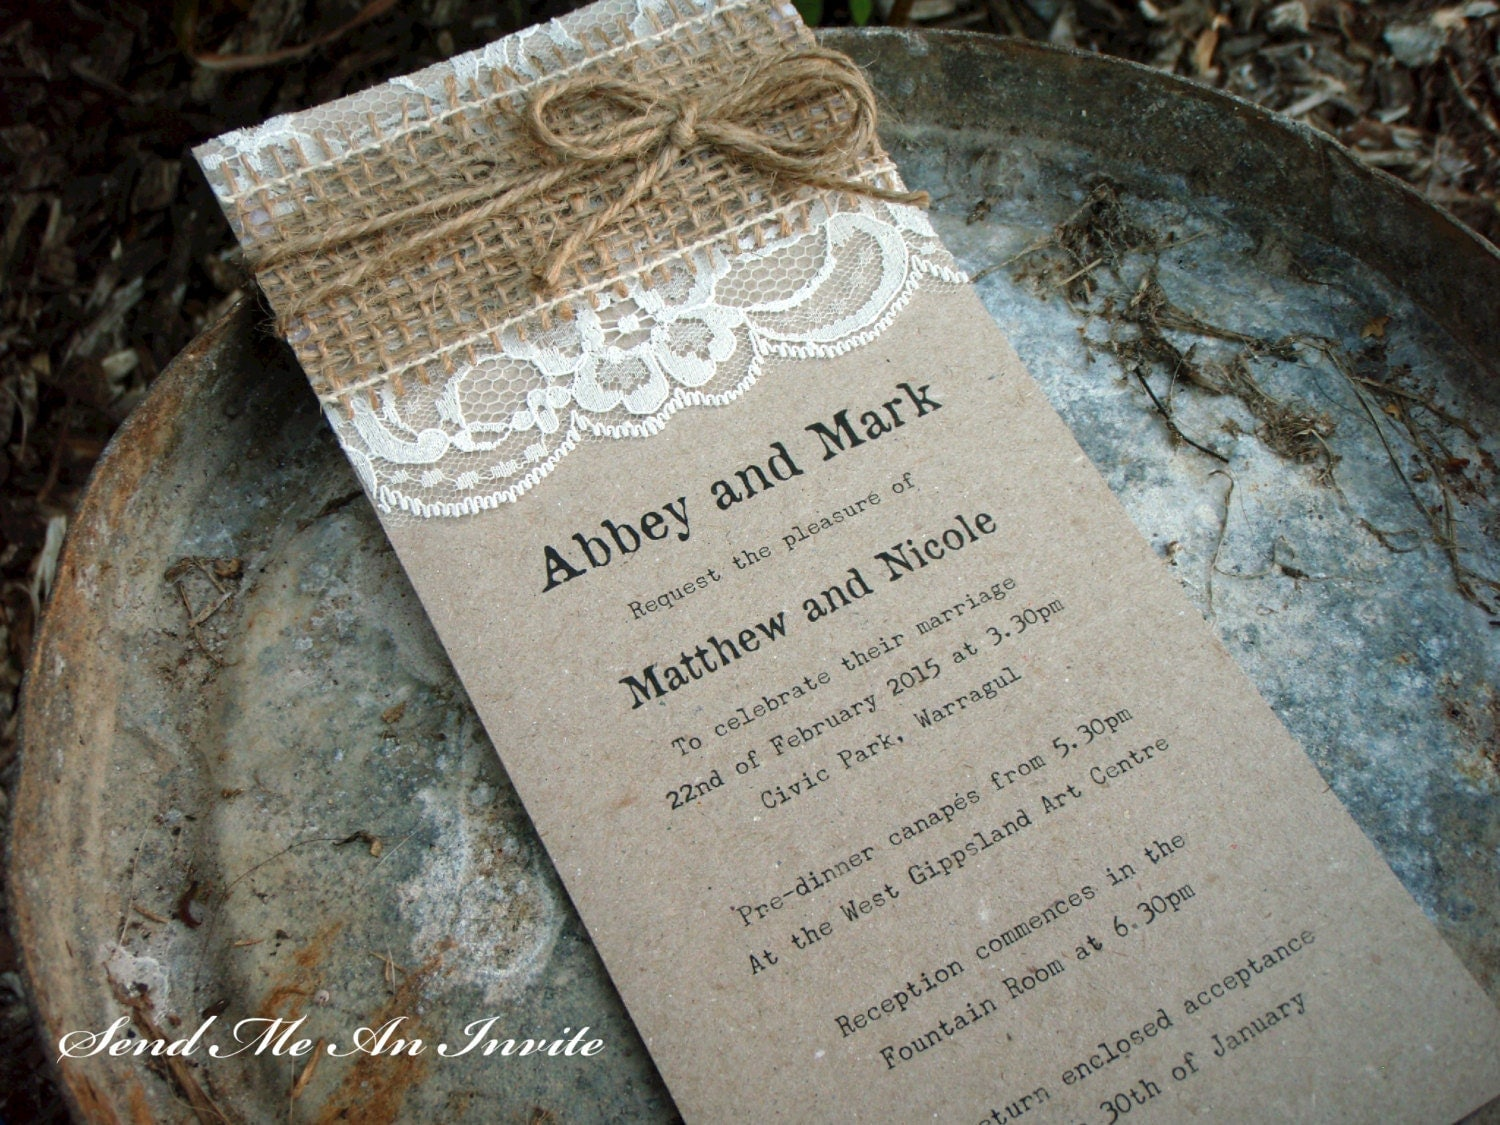 Lace Wedding Invitation: Wedding Invitation Rustic Lace And Hessian With Jute String On